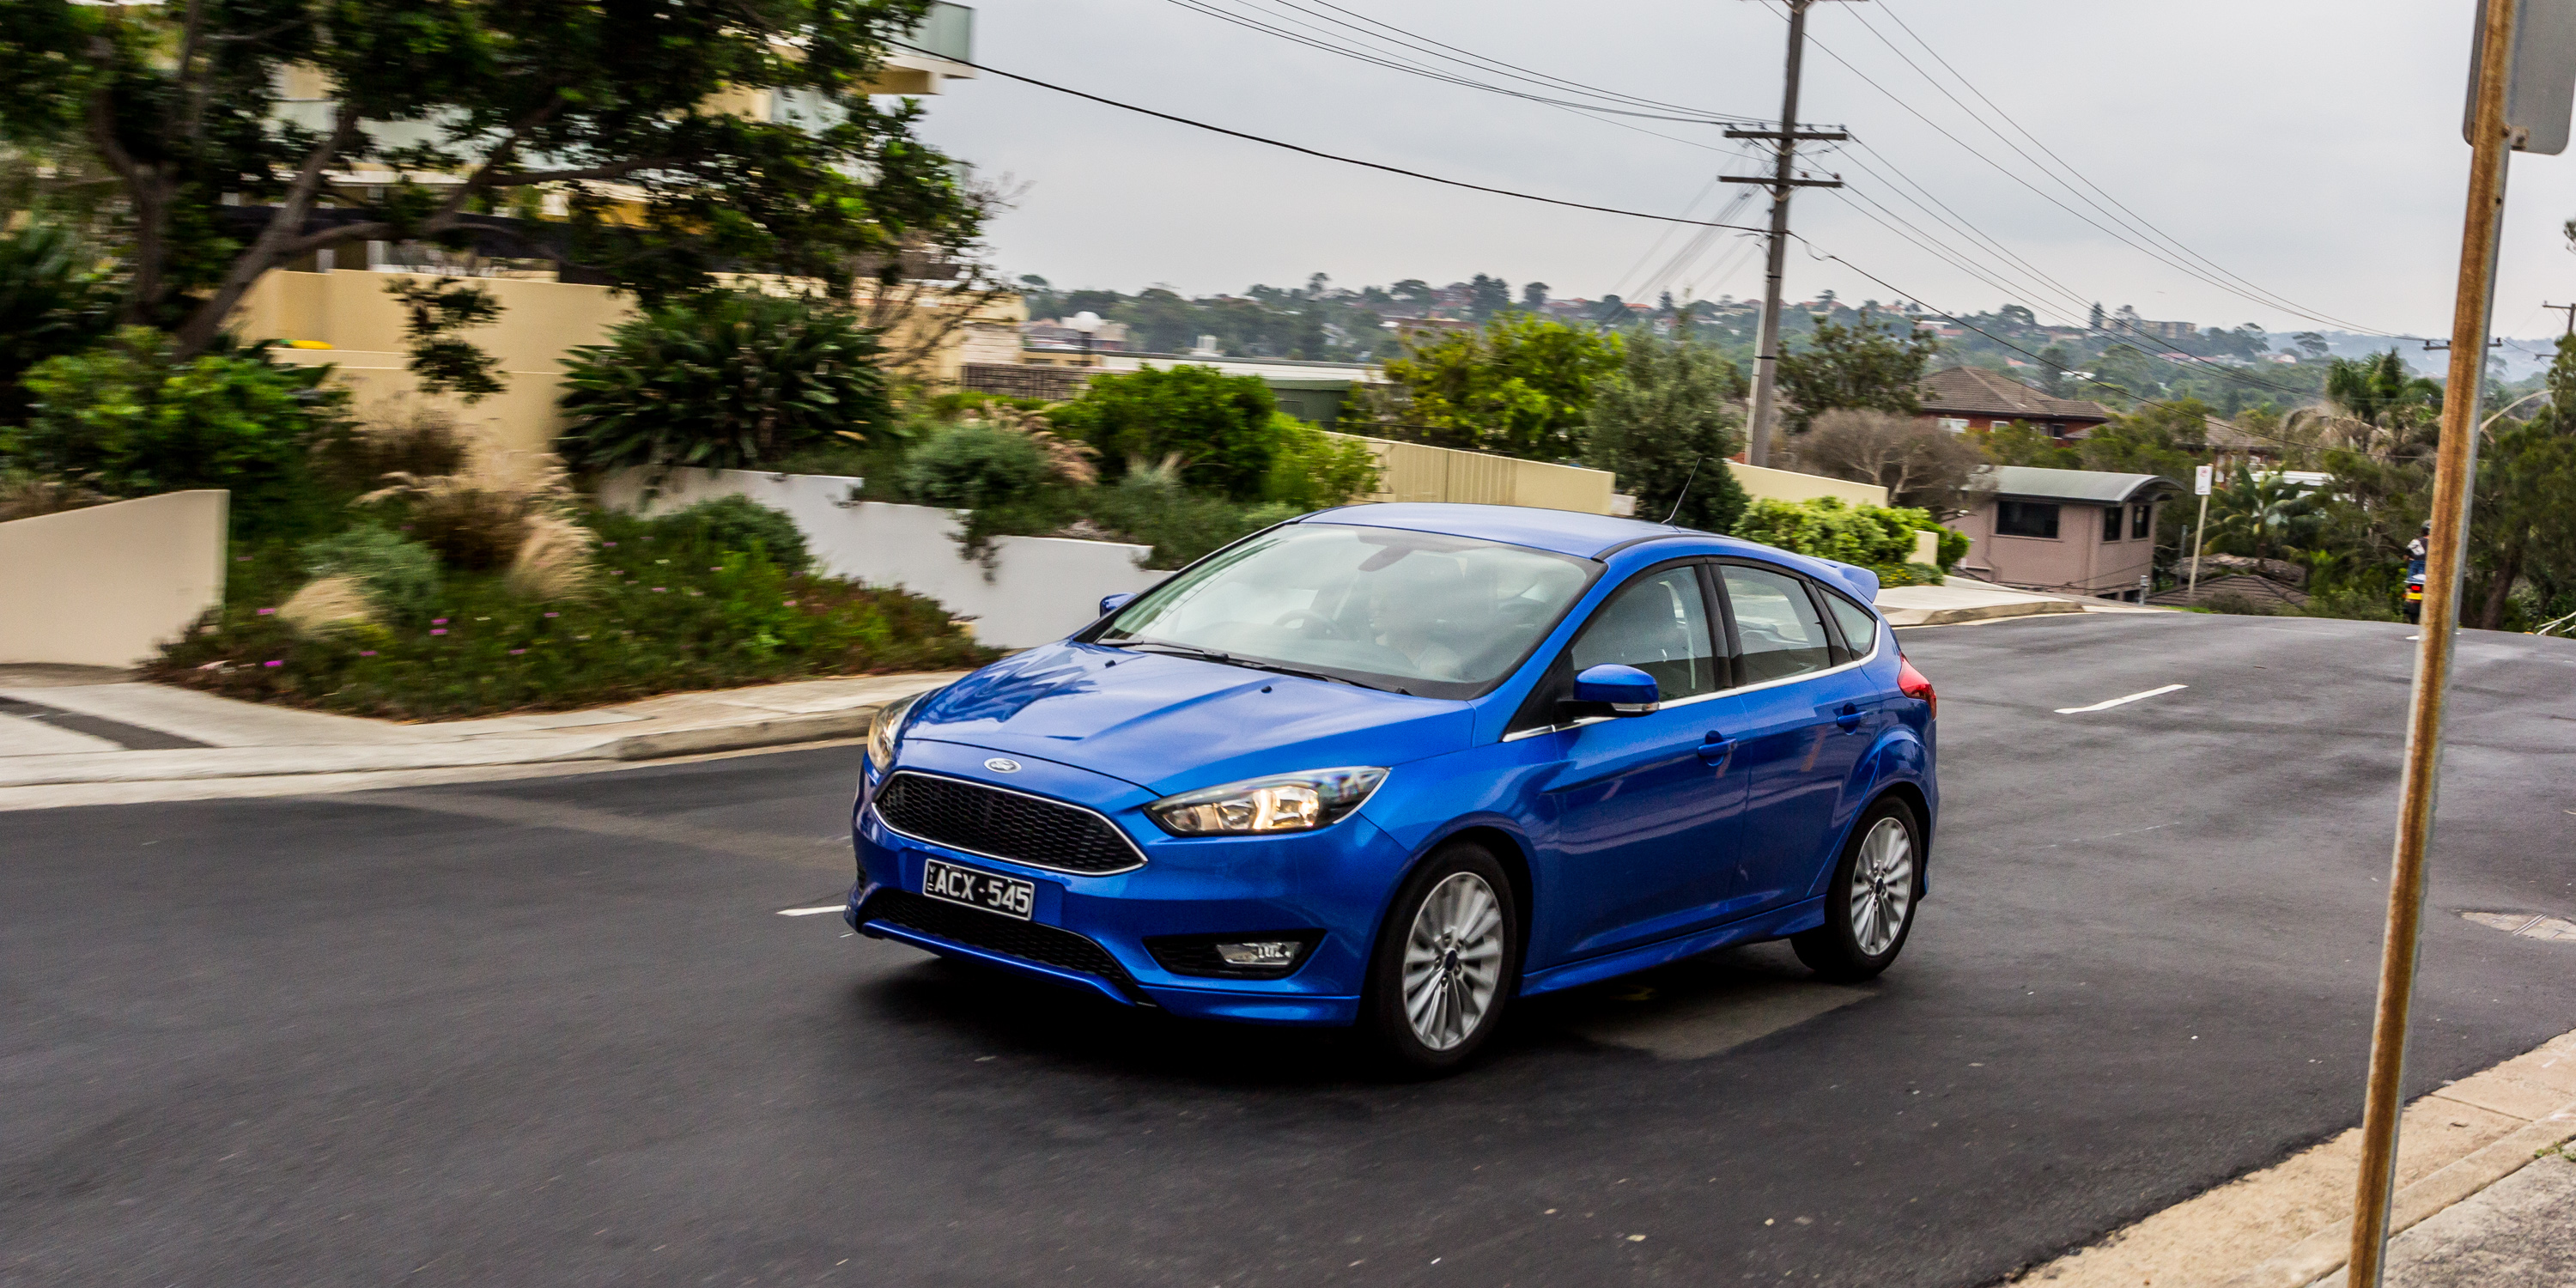 2016 ford focus sport review photos caradvice. Black Bedroom Furniture Sets. Home Design Ideas